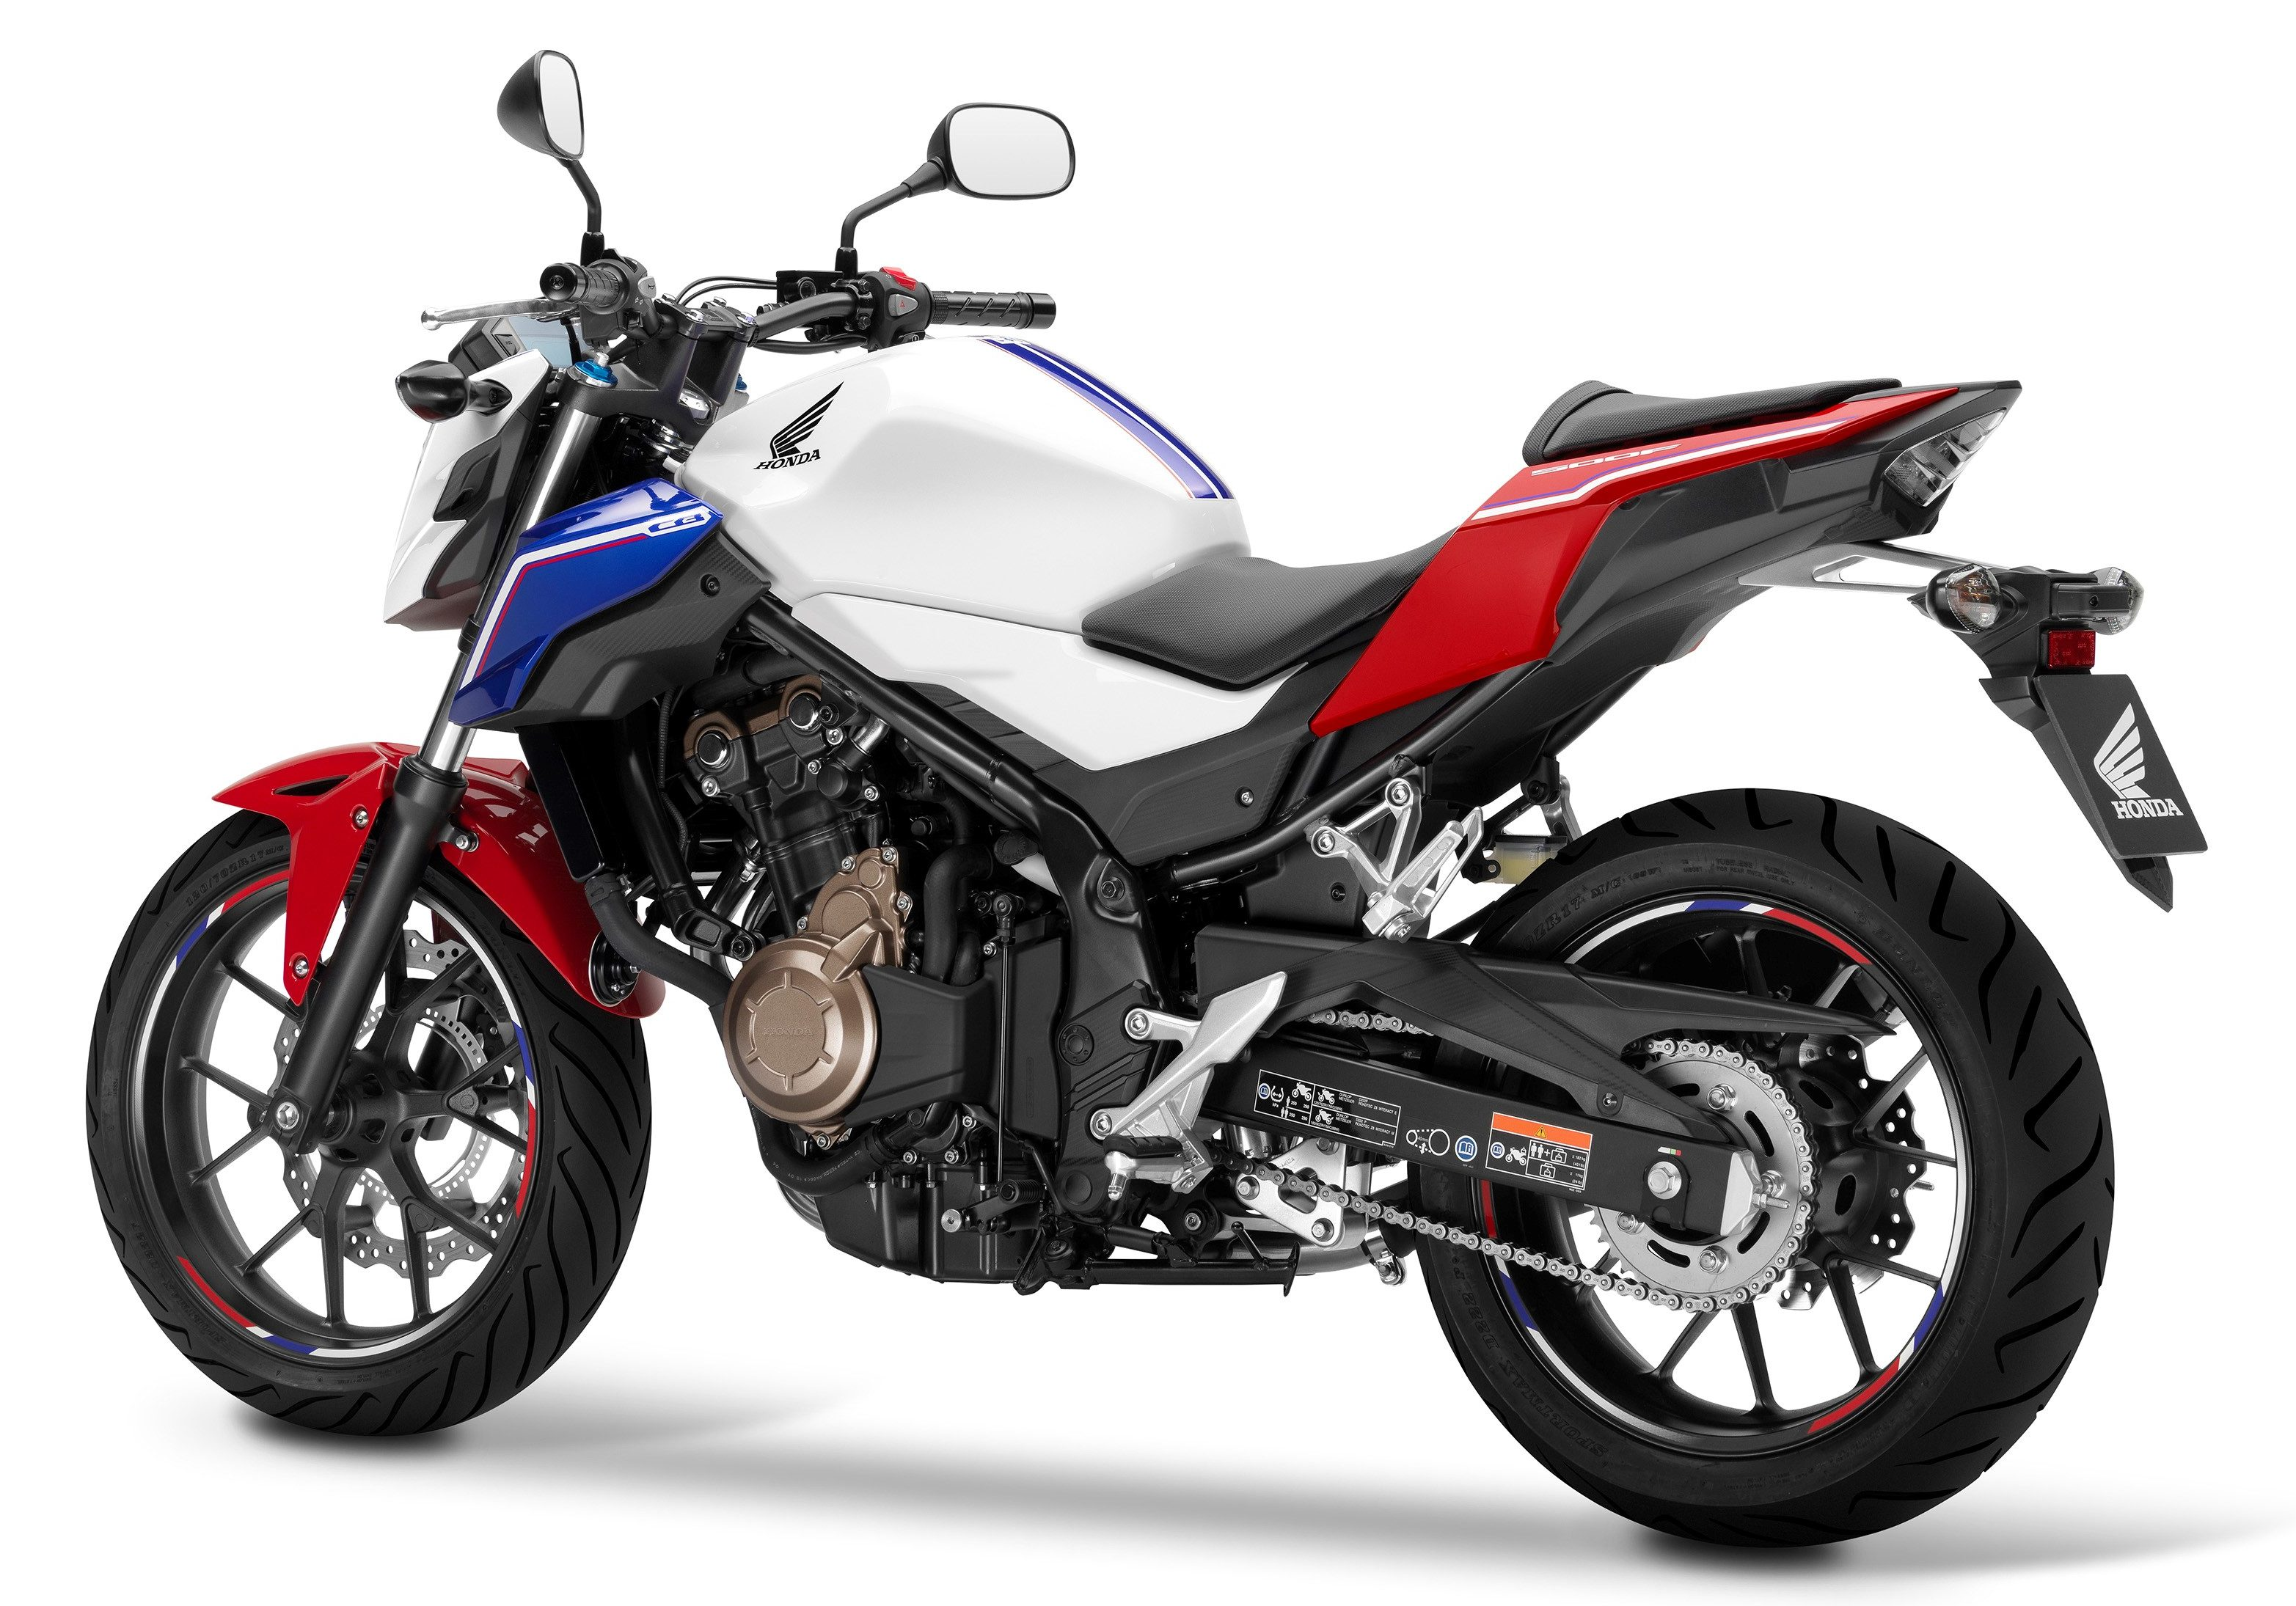 2016 Honda CBR500R CB500F And CB500X Facelift In Malaysia Now Priced From RM31861 To RM35391 Paul Tan